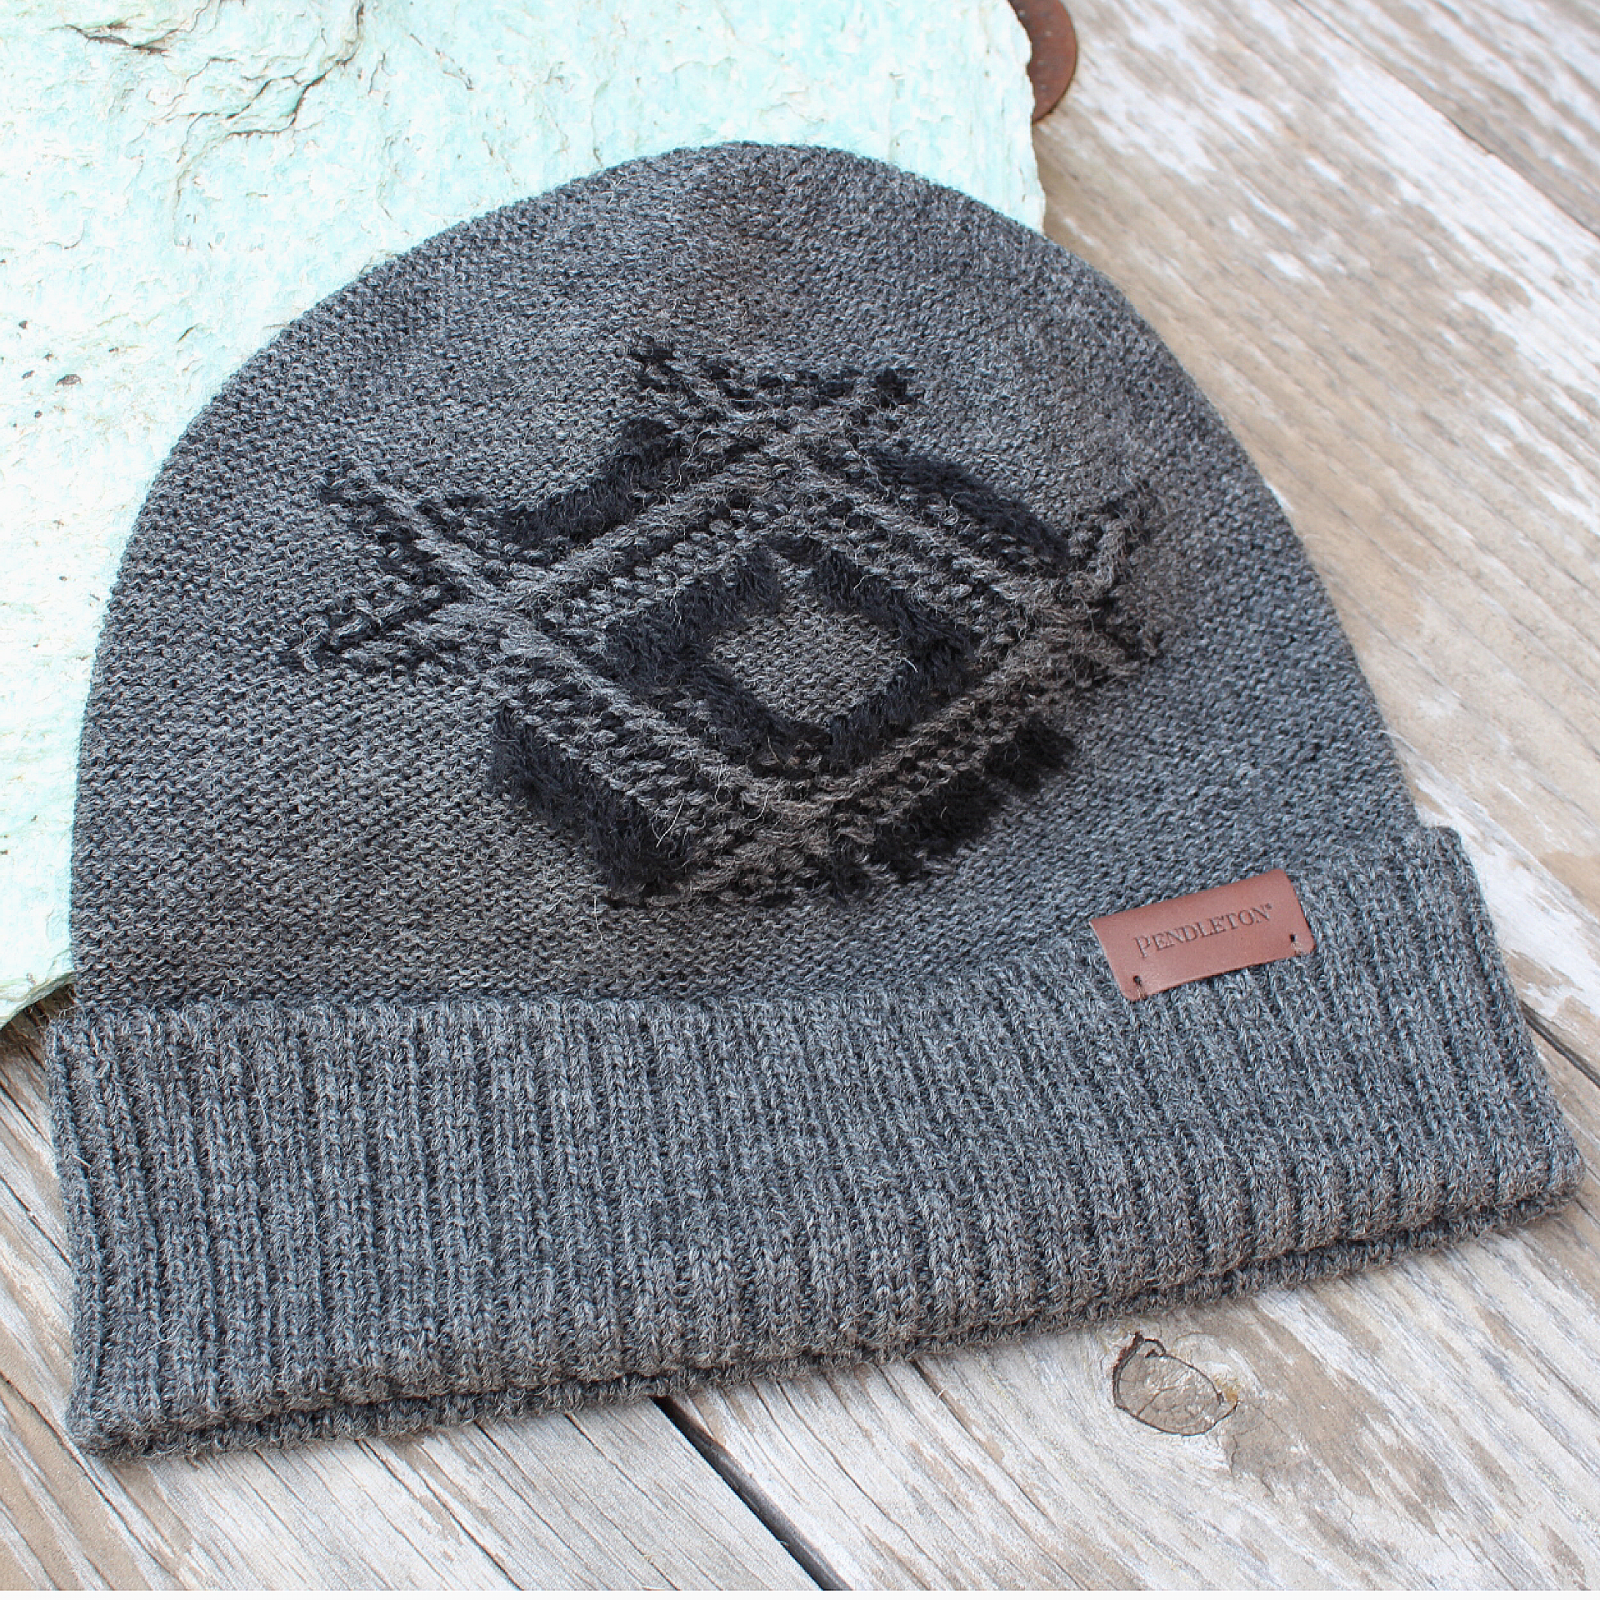 Fringed Beanie from Pendleton